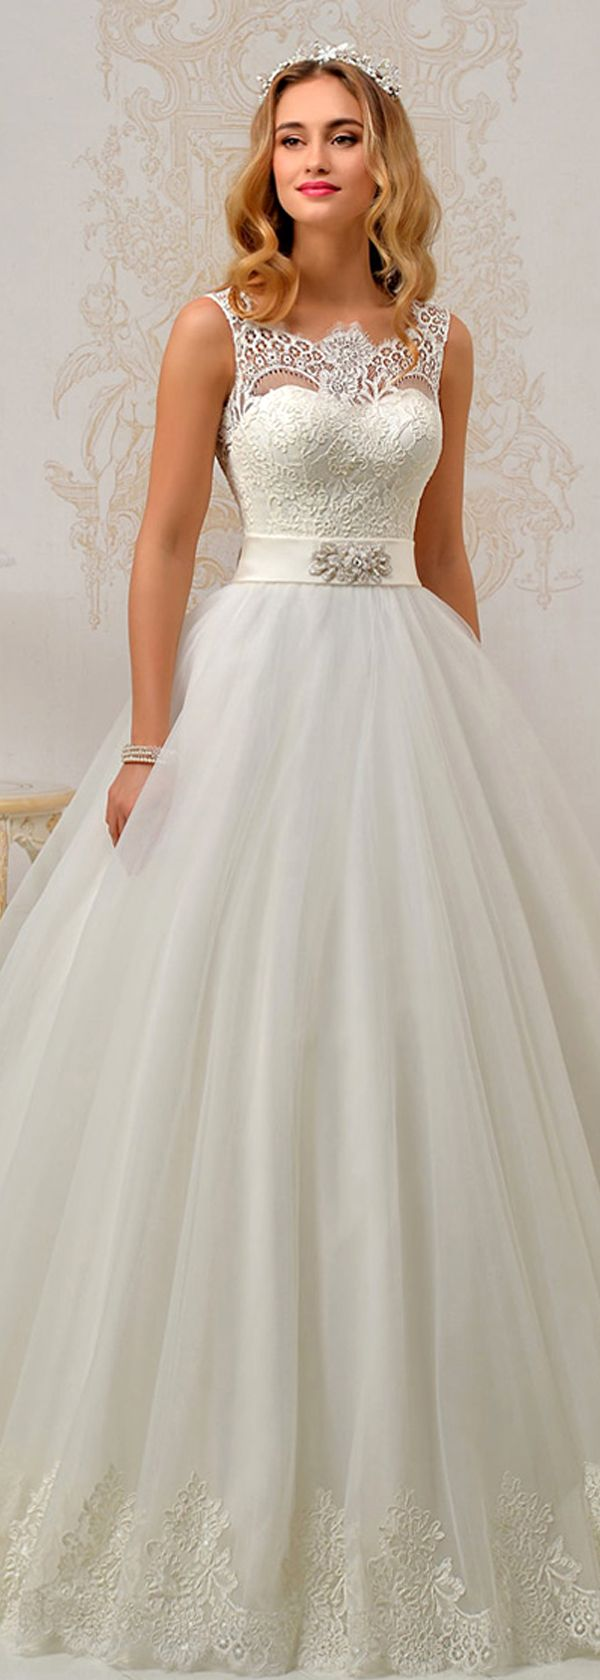 Fantastic Tulle & Satin Bateau Neckline A-Line Wedding Dresses With ...